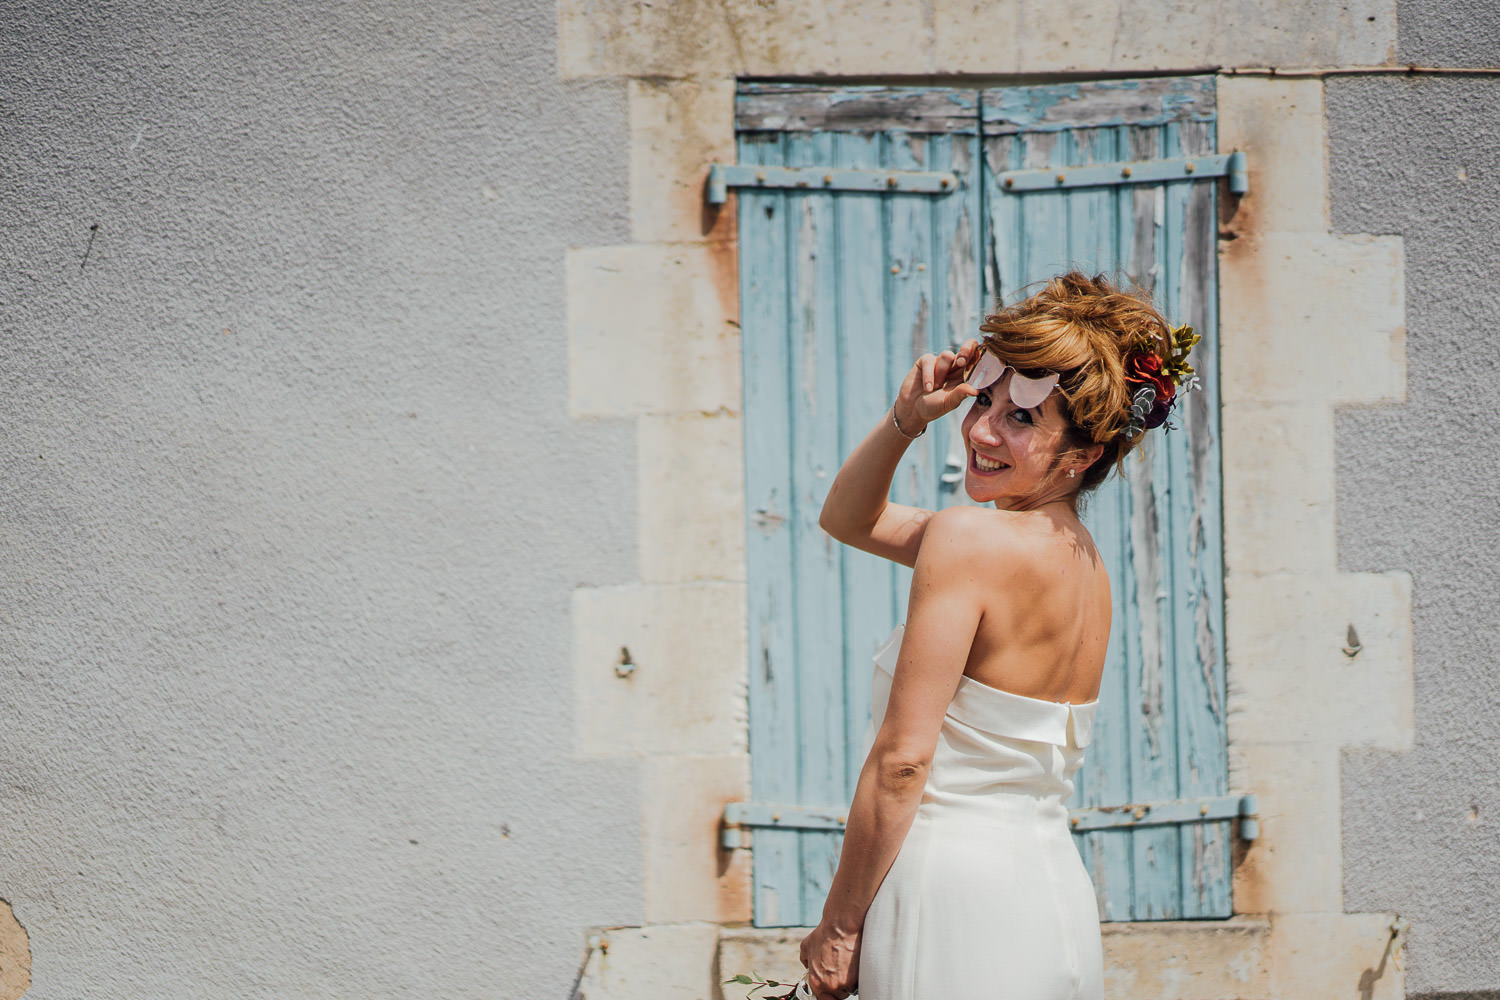 Cool bridal outfit in Bordeaux Chateau wedding by creative destination wedding photographer the shannons photography